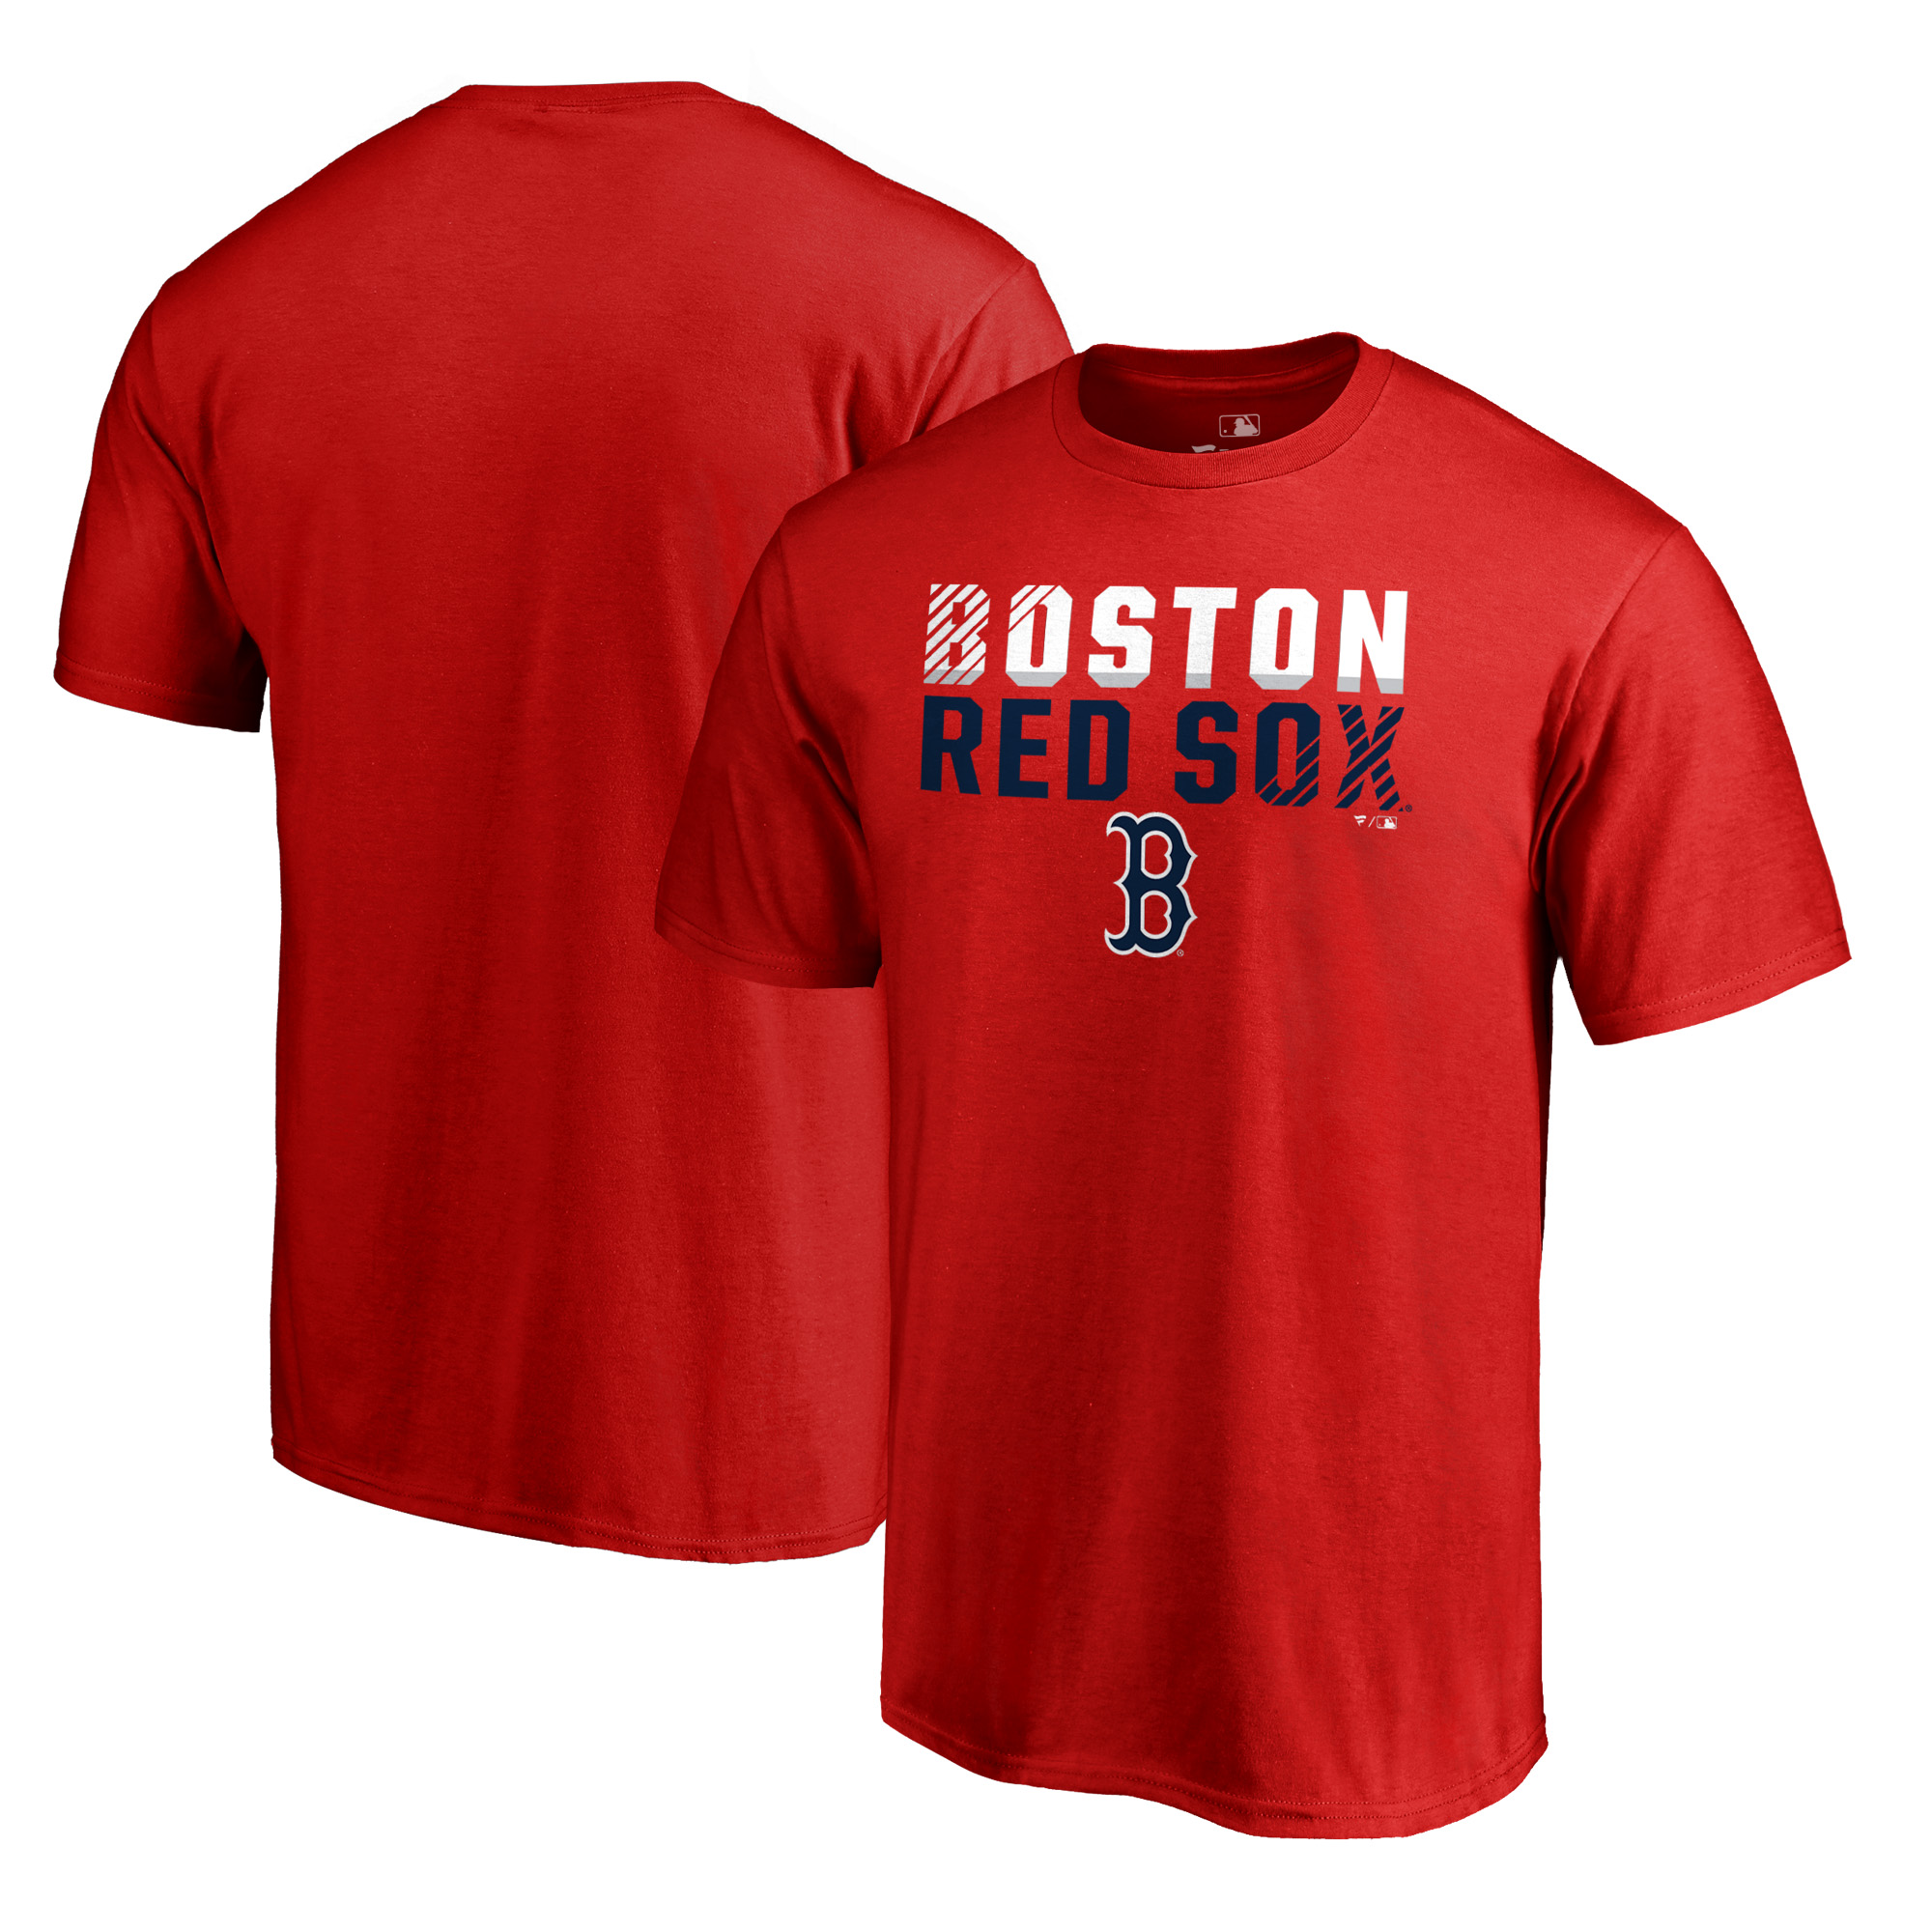 Boston Red Sox Fanatics Branded Big & Tall Fade Out T-Shirt - Red